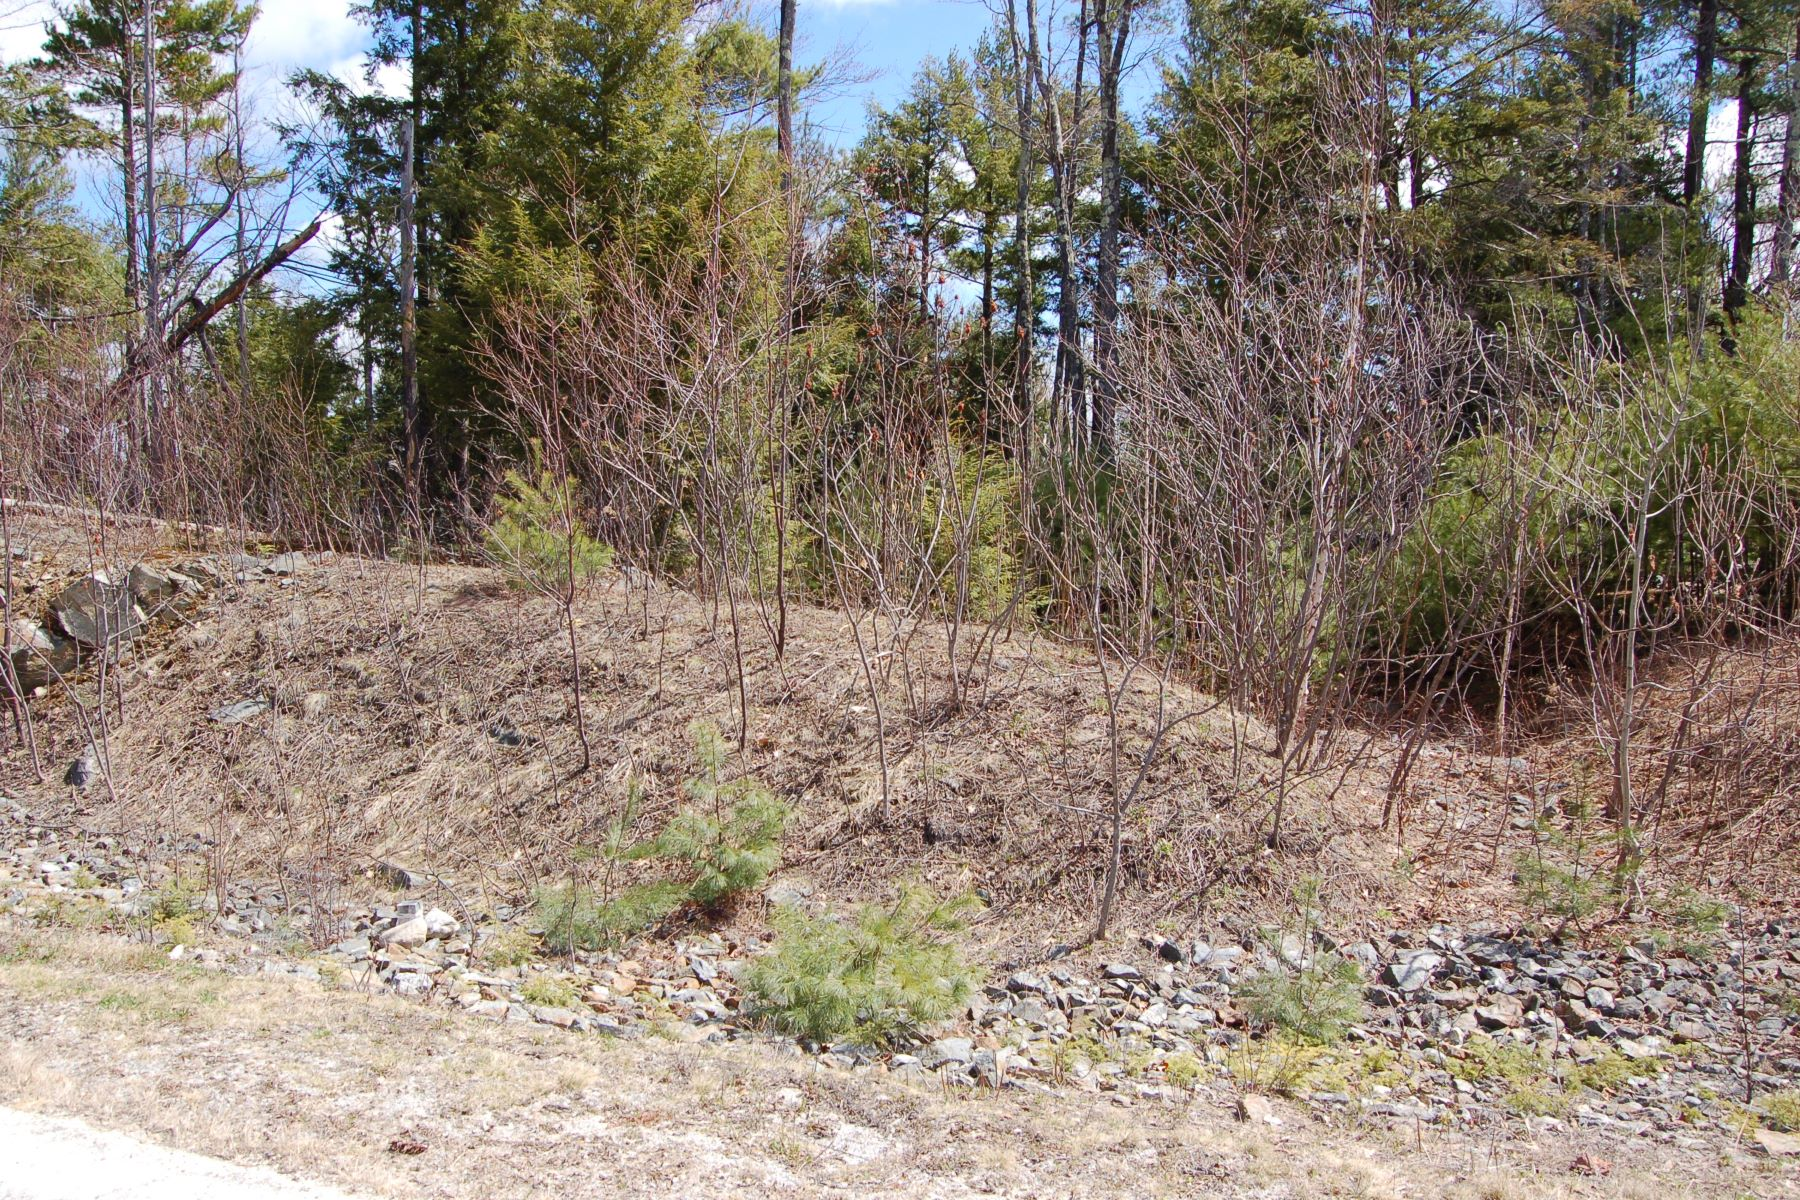 Land for Sale at 105 Chapin Way, Newbury 105 Chapin Way Newbury, New Hampshire 03255 United States